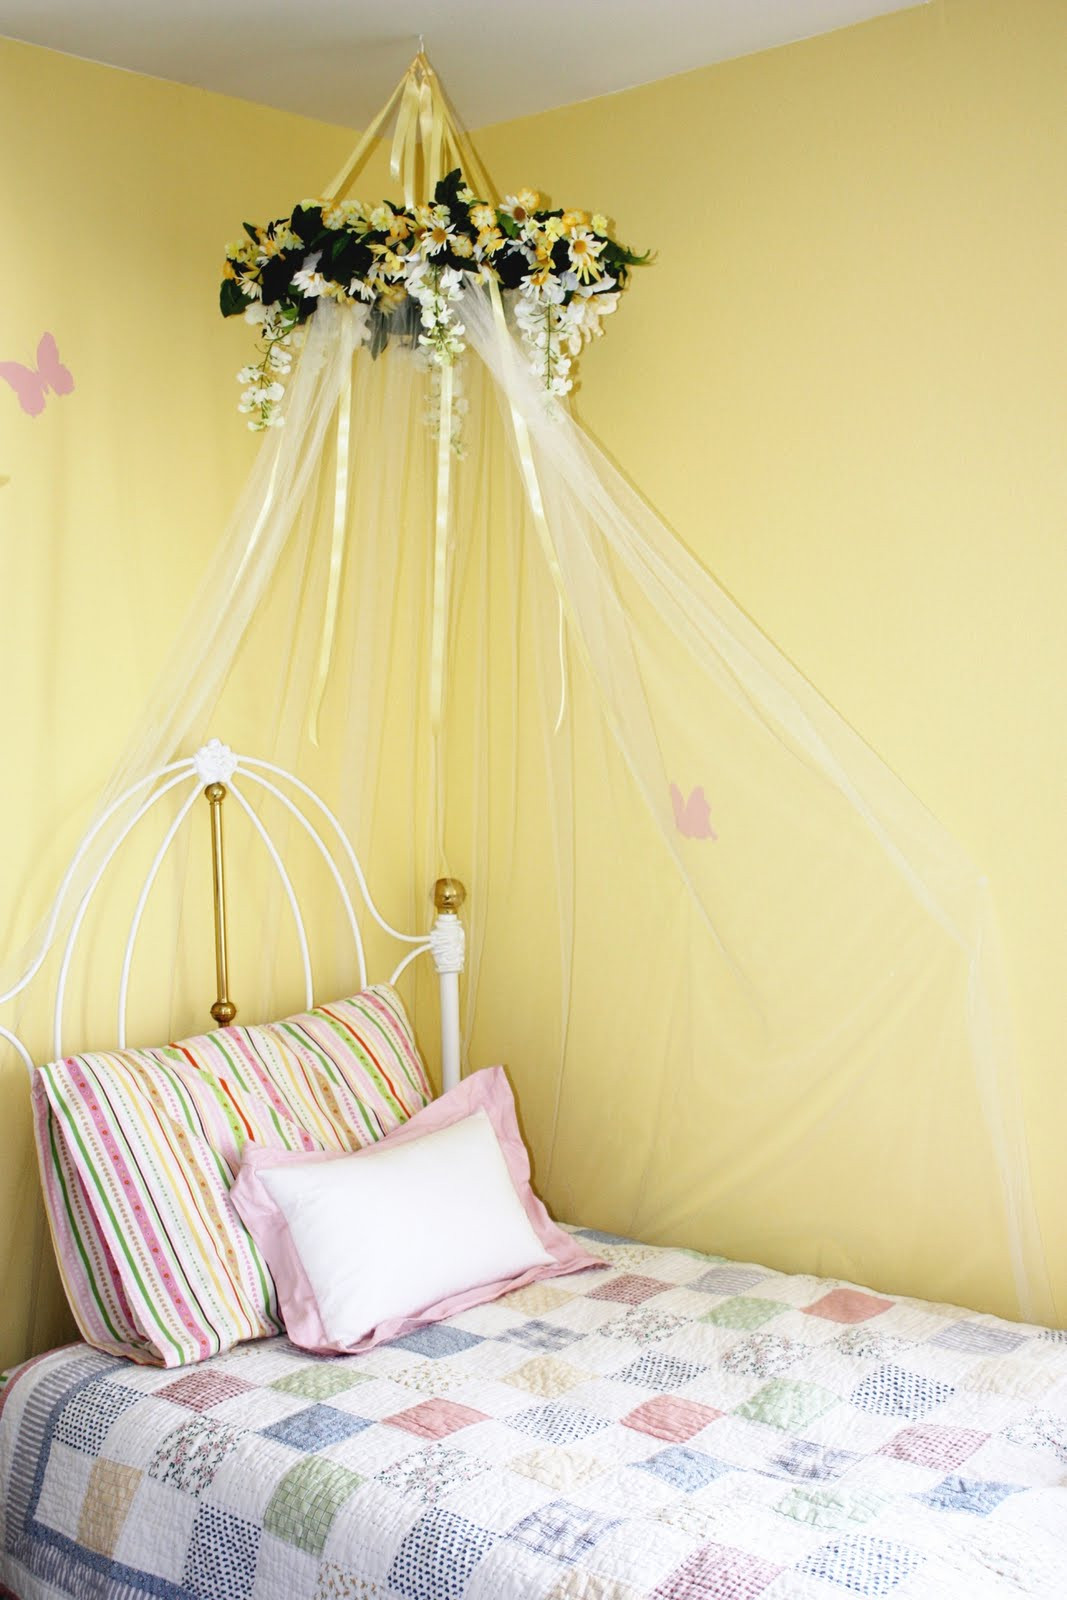 Best ideas about DIY Girls Beds . Save or Pin Everyday Art DIY bed canopy for little girls room Now.